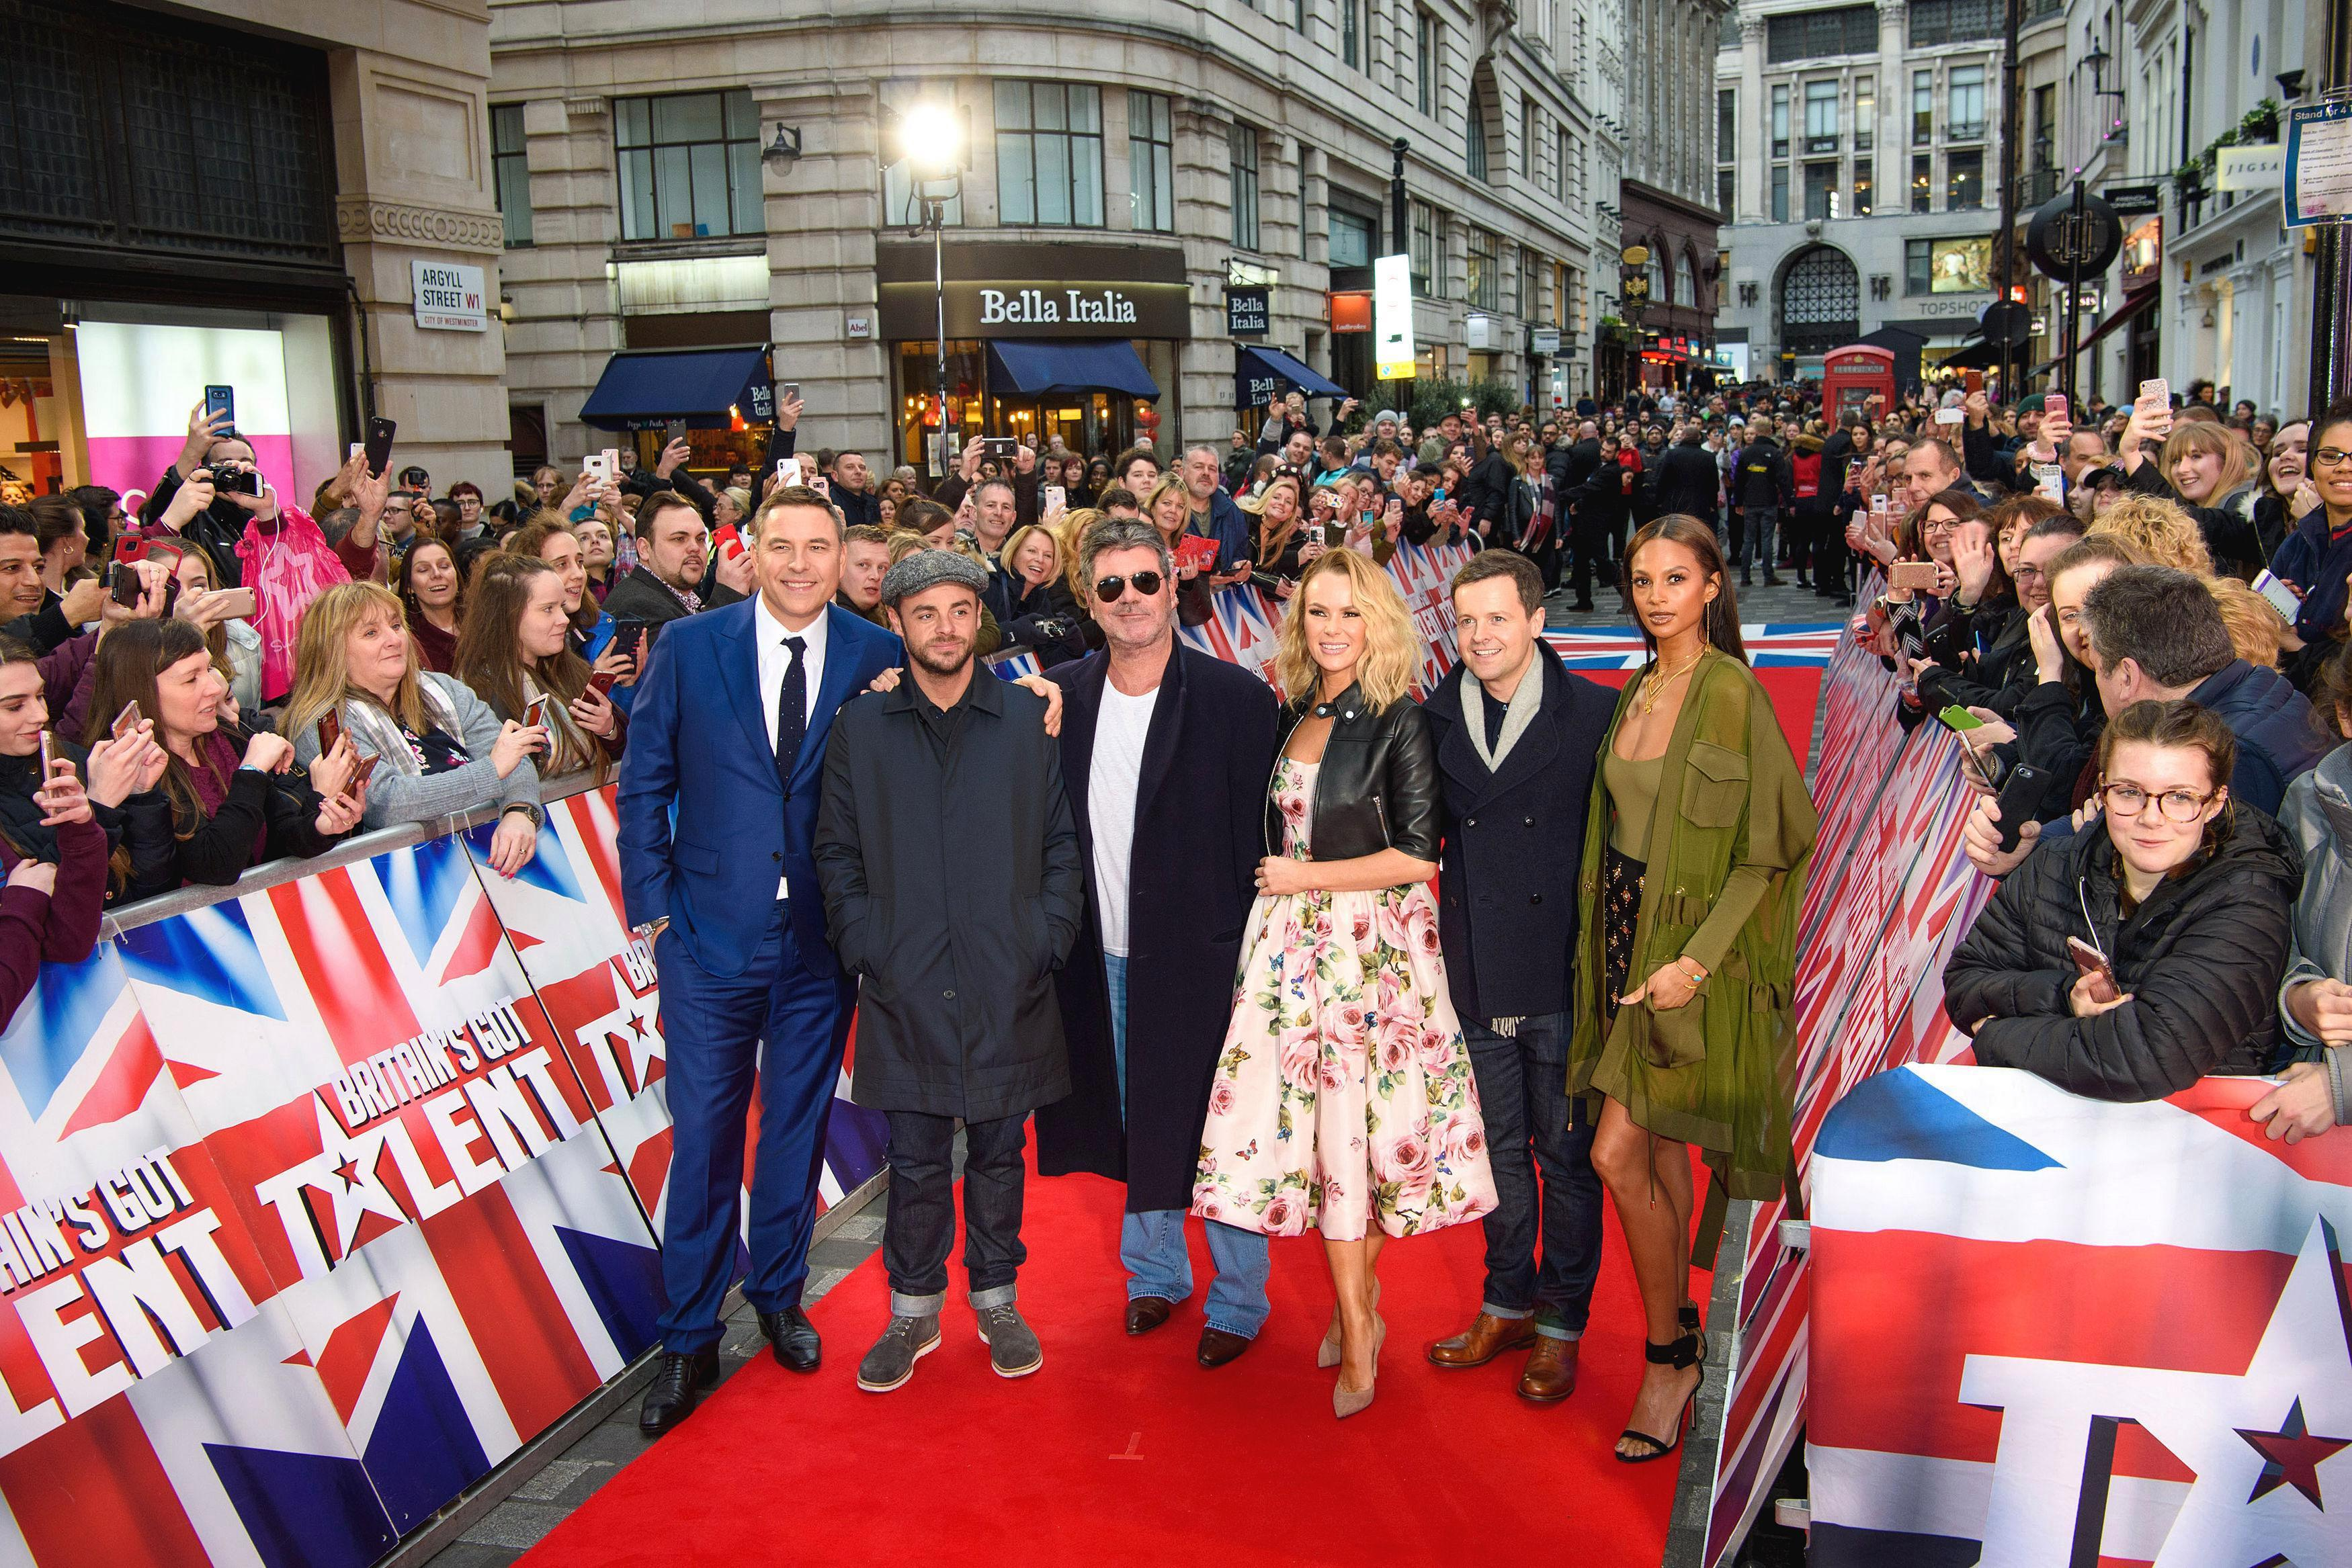 Britain's Got Talent bosses are taking security and safety of judges and audiences 'very seriously' amid acid attack fears at auditions